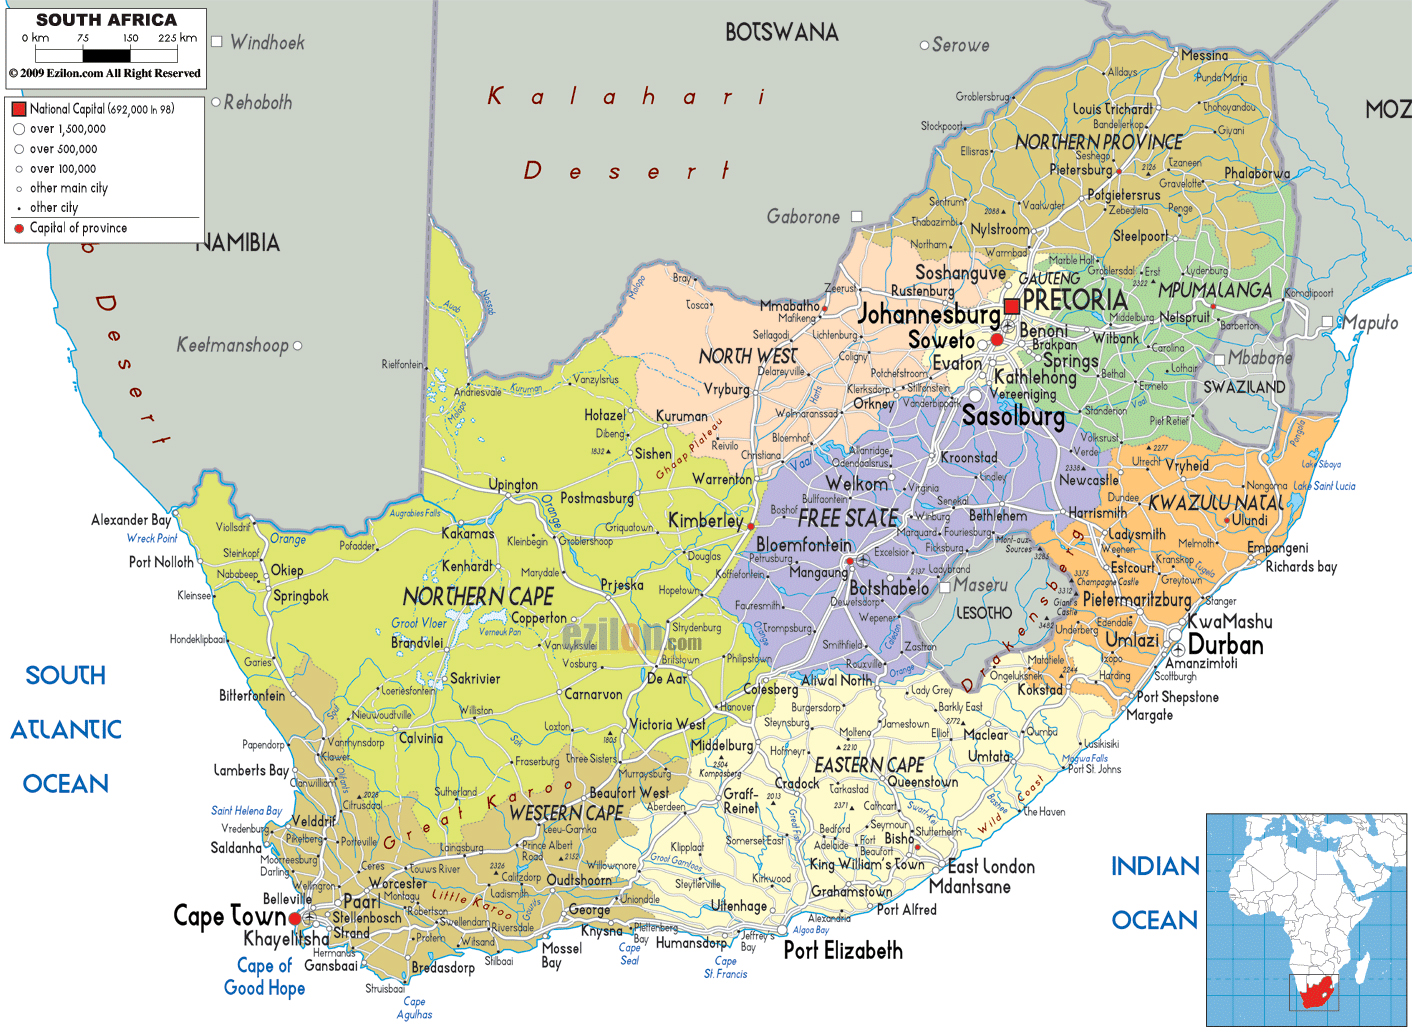 map of south africa roads Large Political And Administrative Map Of South Africa With Roads map of south africa roads